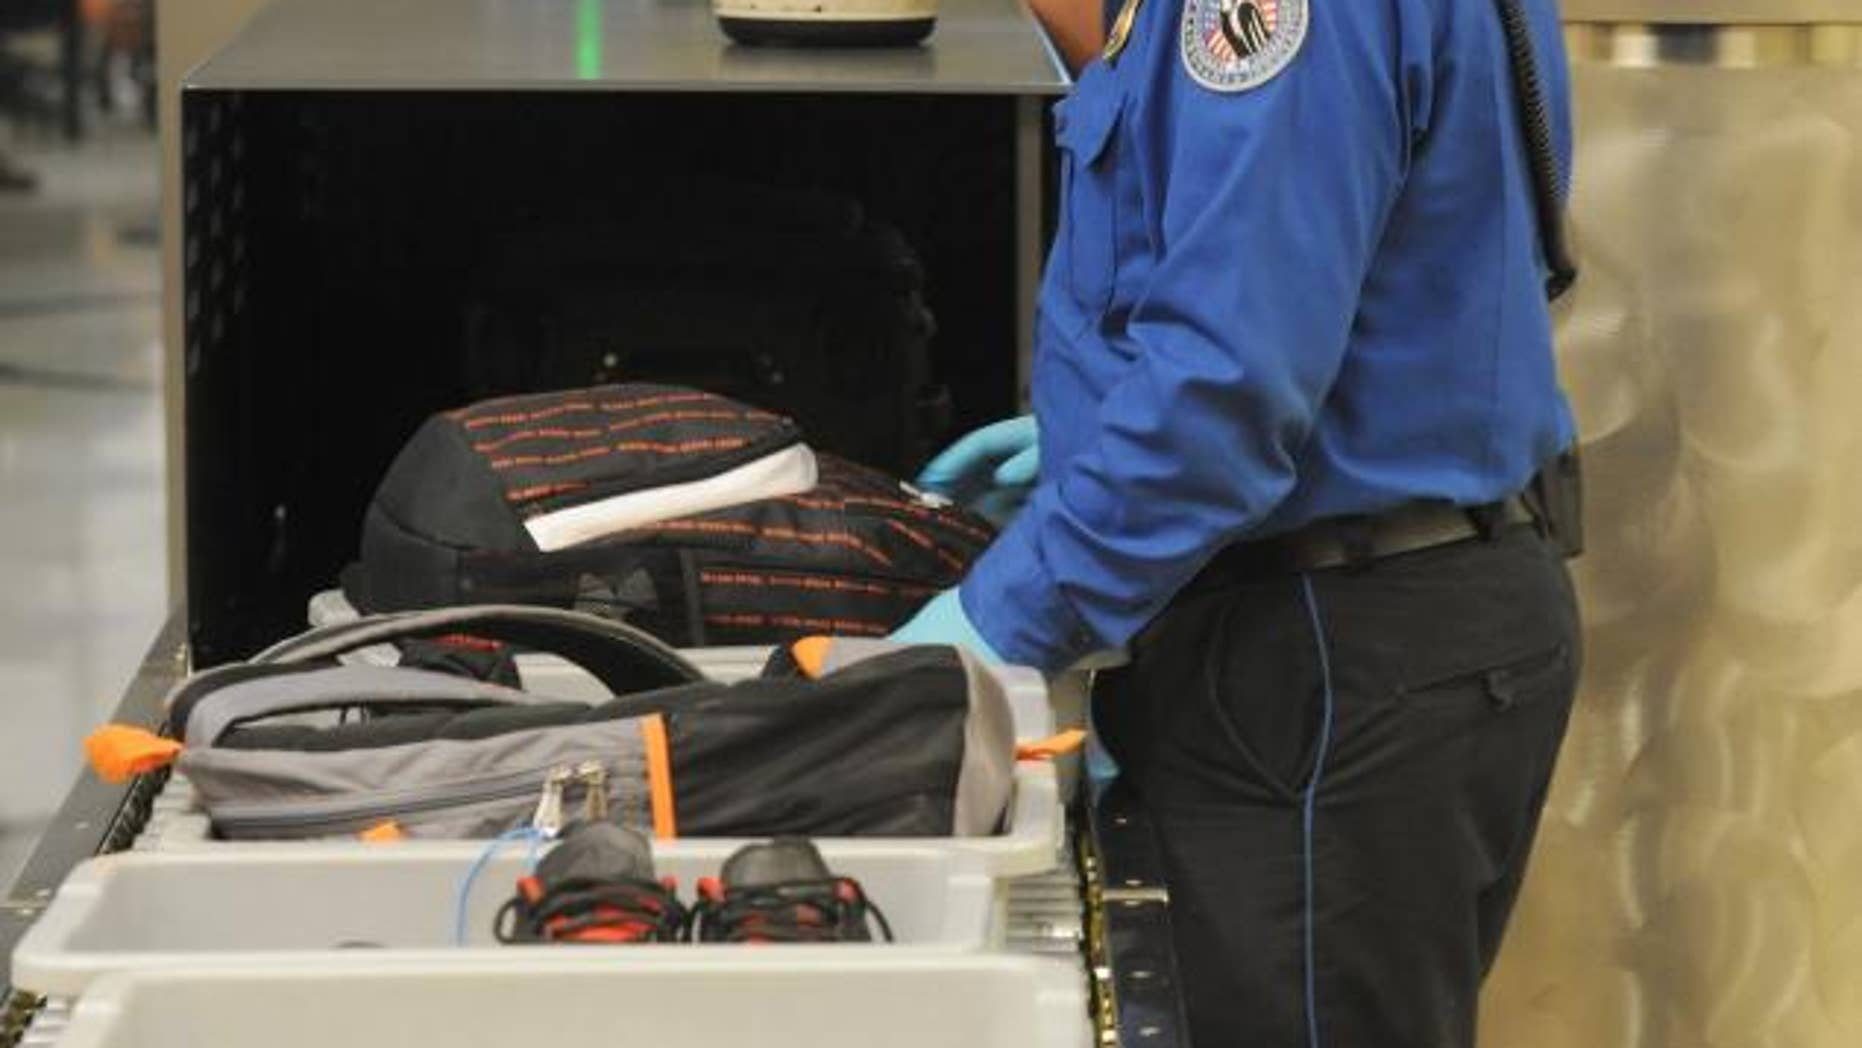 A security agent guides bags through the scanner.